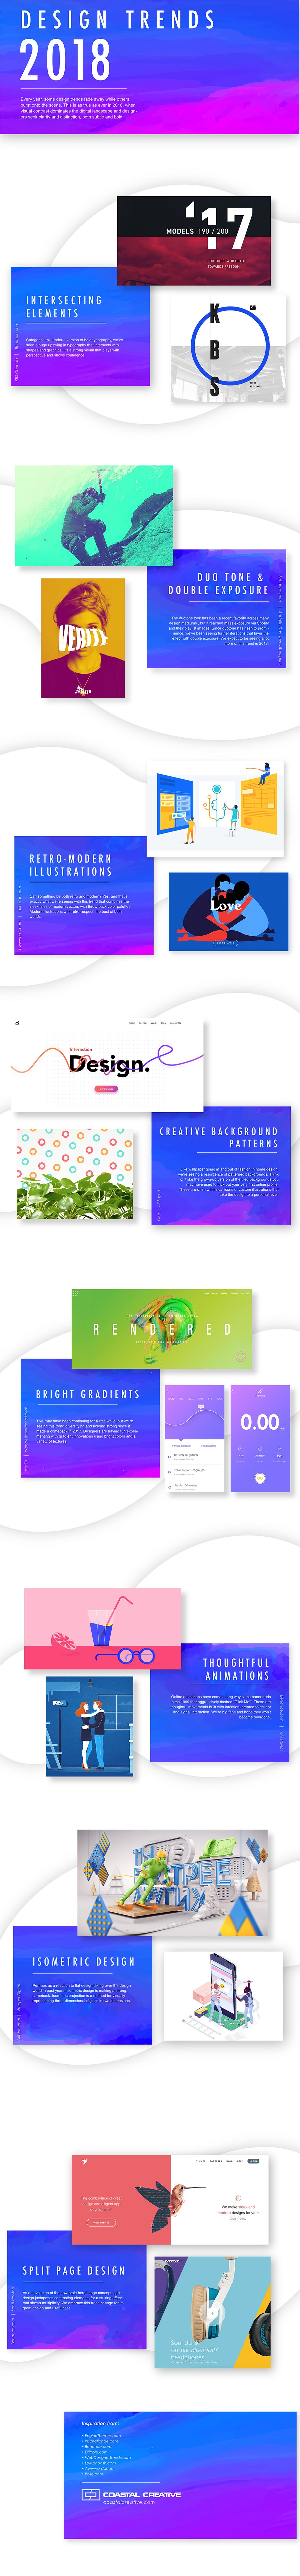 8 Web Graphic Design Trends That Will Rock 2018